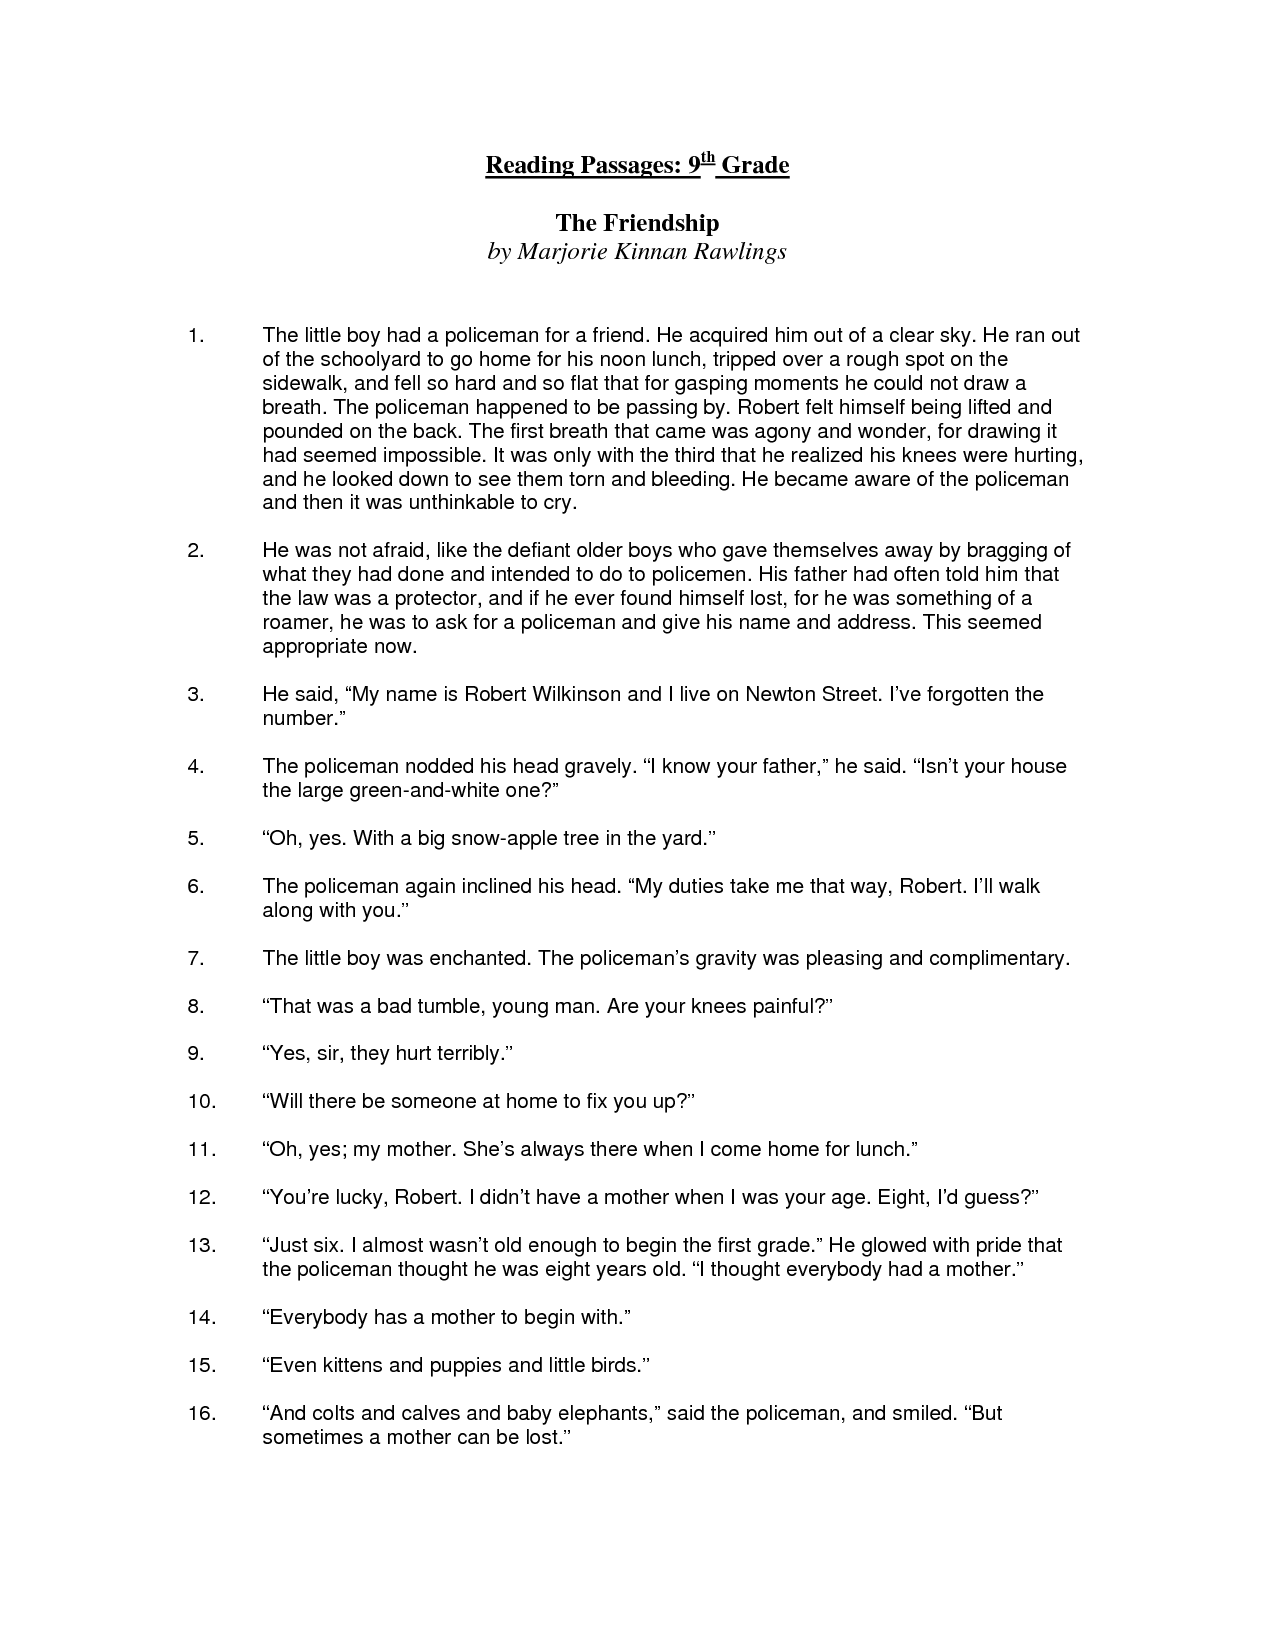 Worksheets For 9th Grade : Best images of th grade reading worksheets printable